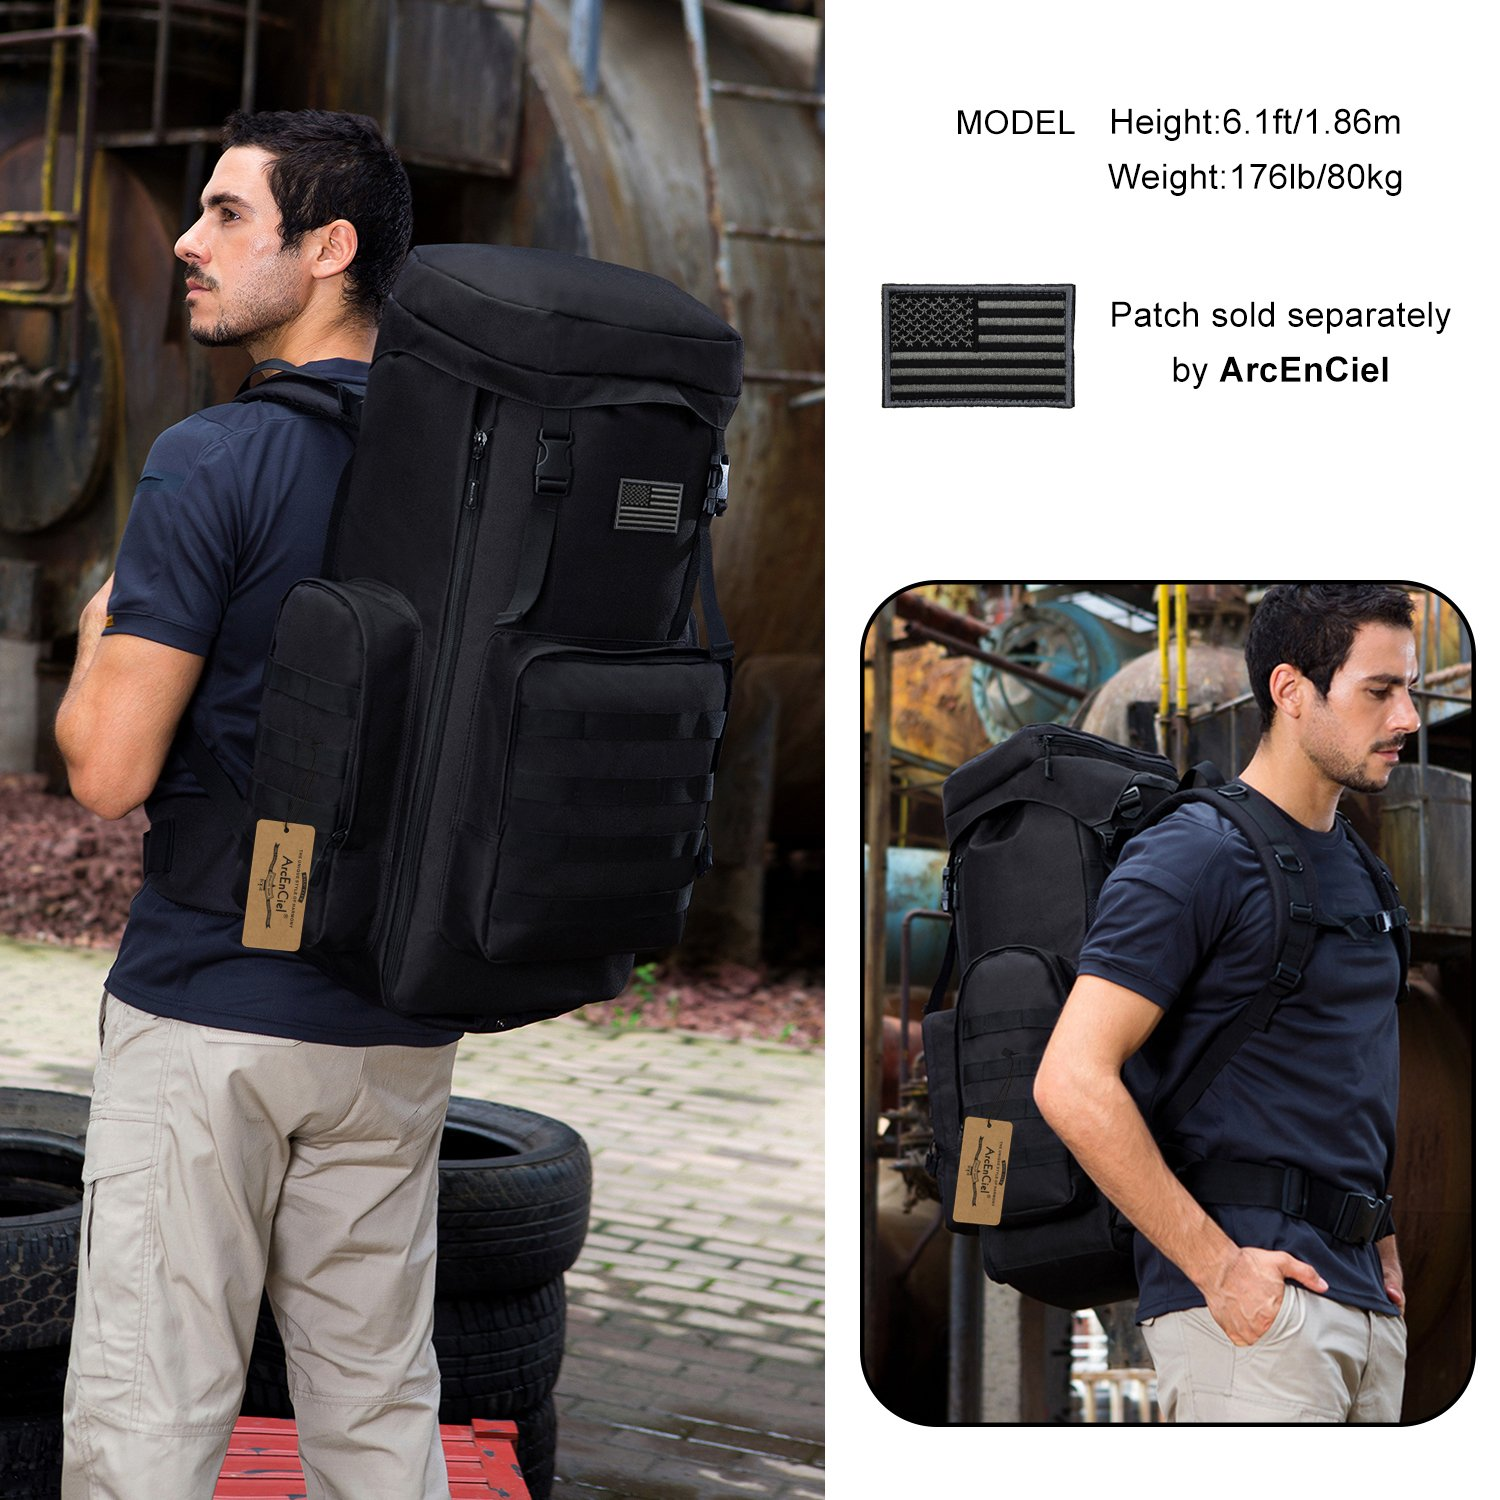 ArcEnCiel 70-85L Large Capacity Tactical Travel Backpack MOLLE Rucksack Outdoor Travel Bag for Travelling Trekking Camping Hiking Hunting -Rain Cover Included (Black) by ArcEnCiel (Image #7)